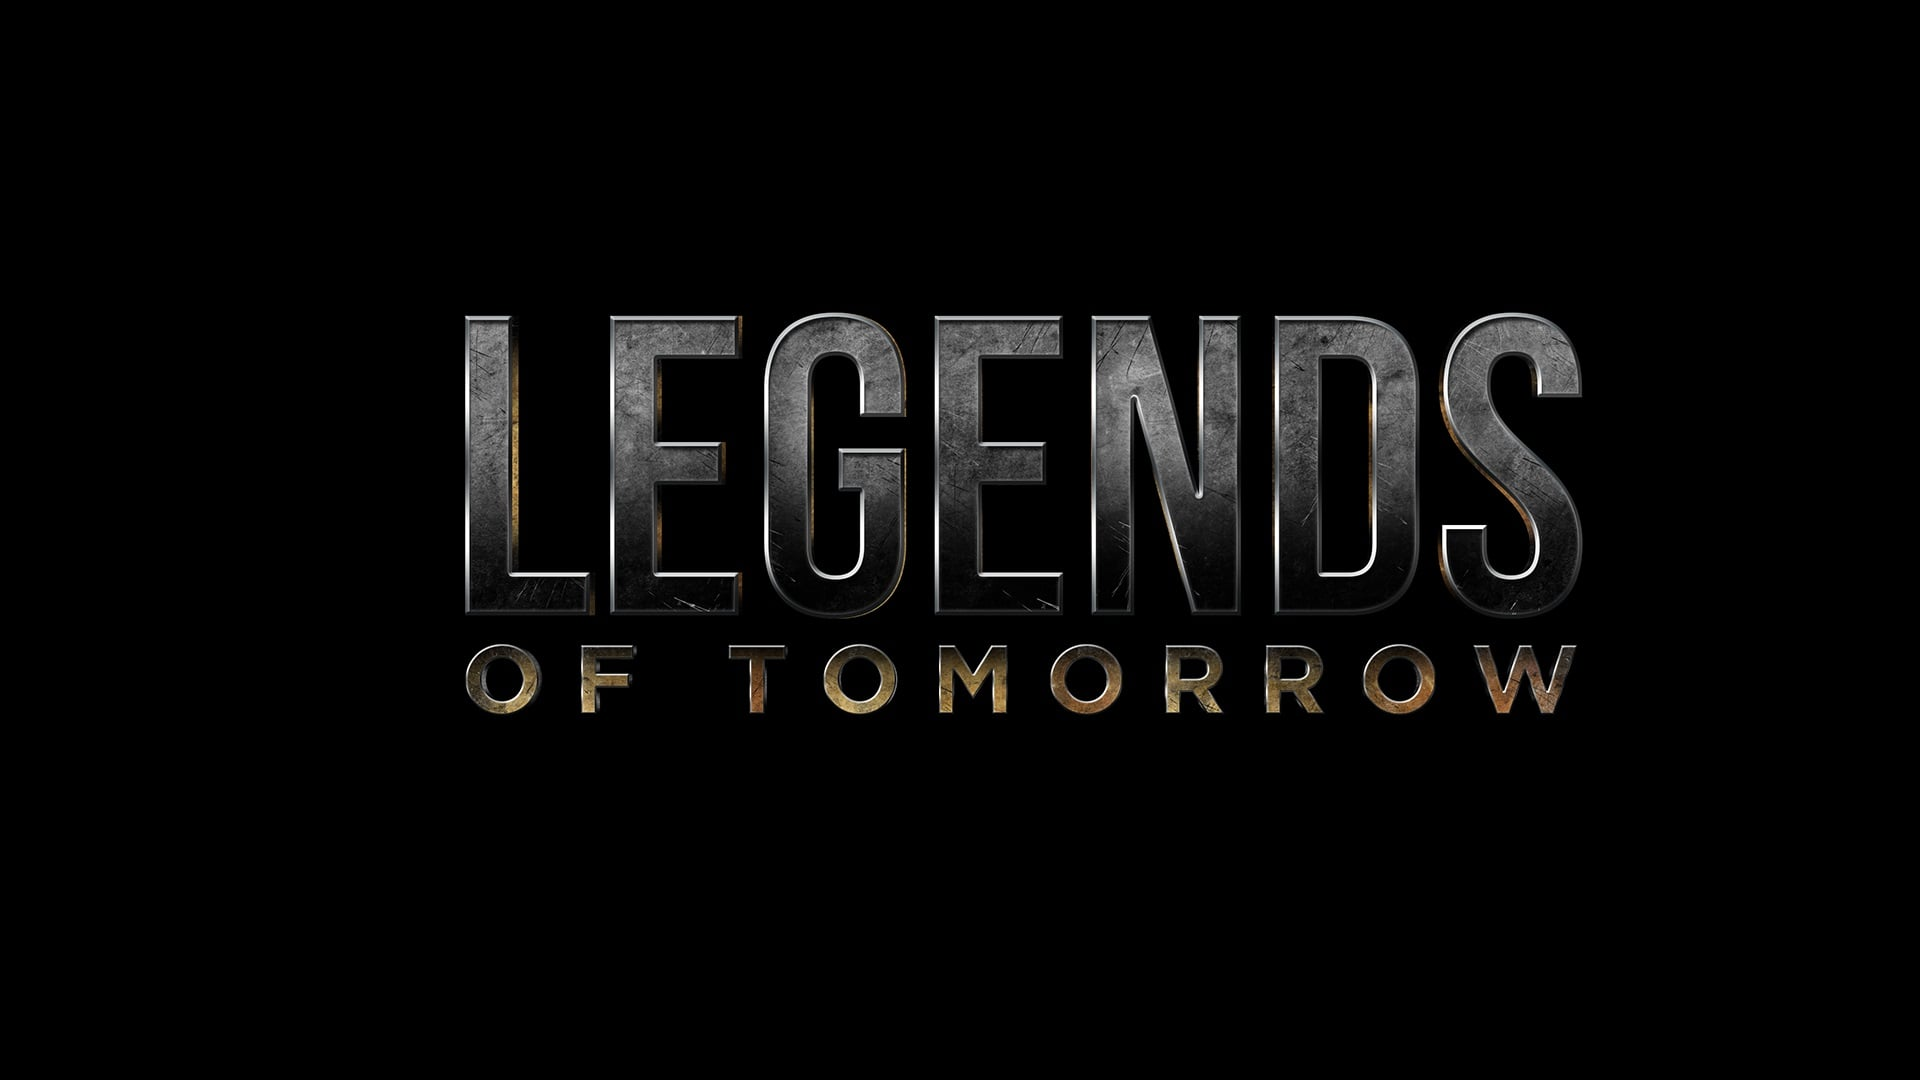 Legends of tomorrow wallpapers hd download dcs legends of tomorrow black logo hd wallpapers voltagebd Gallery